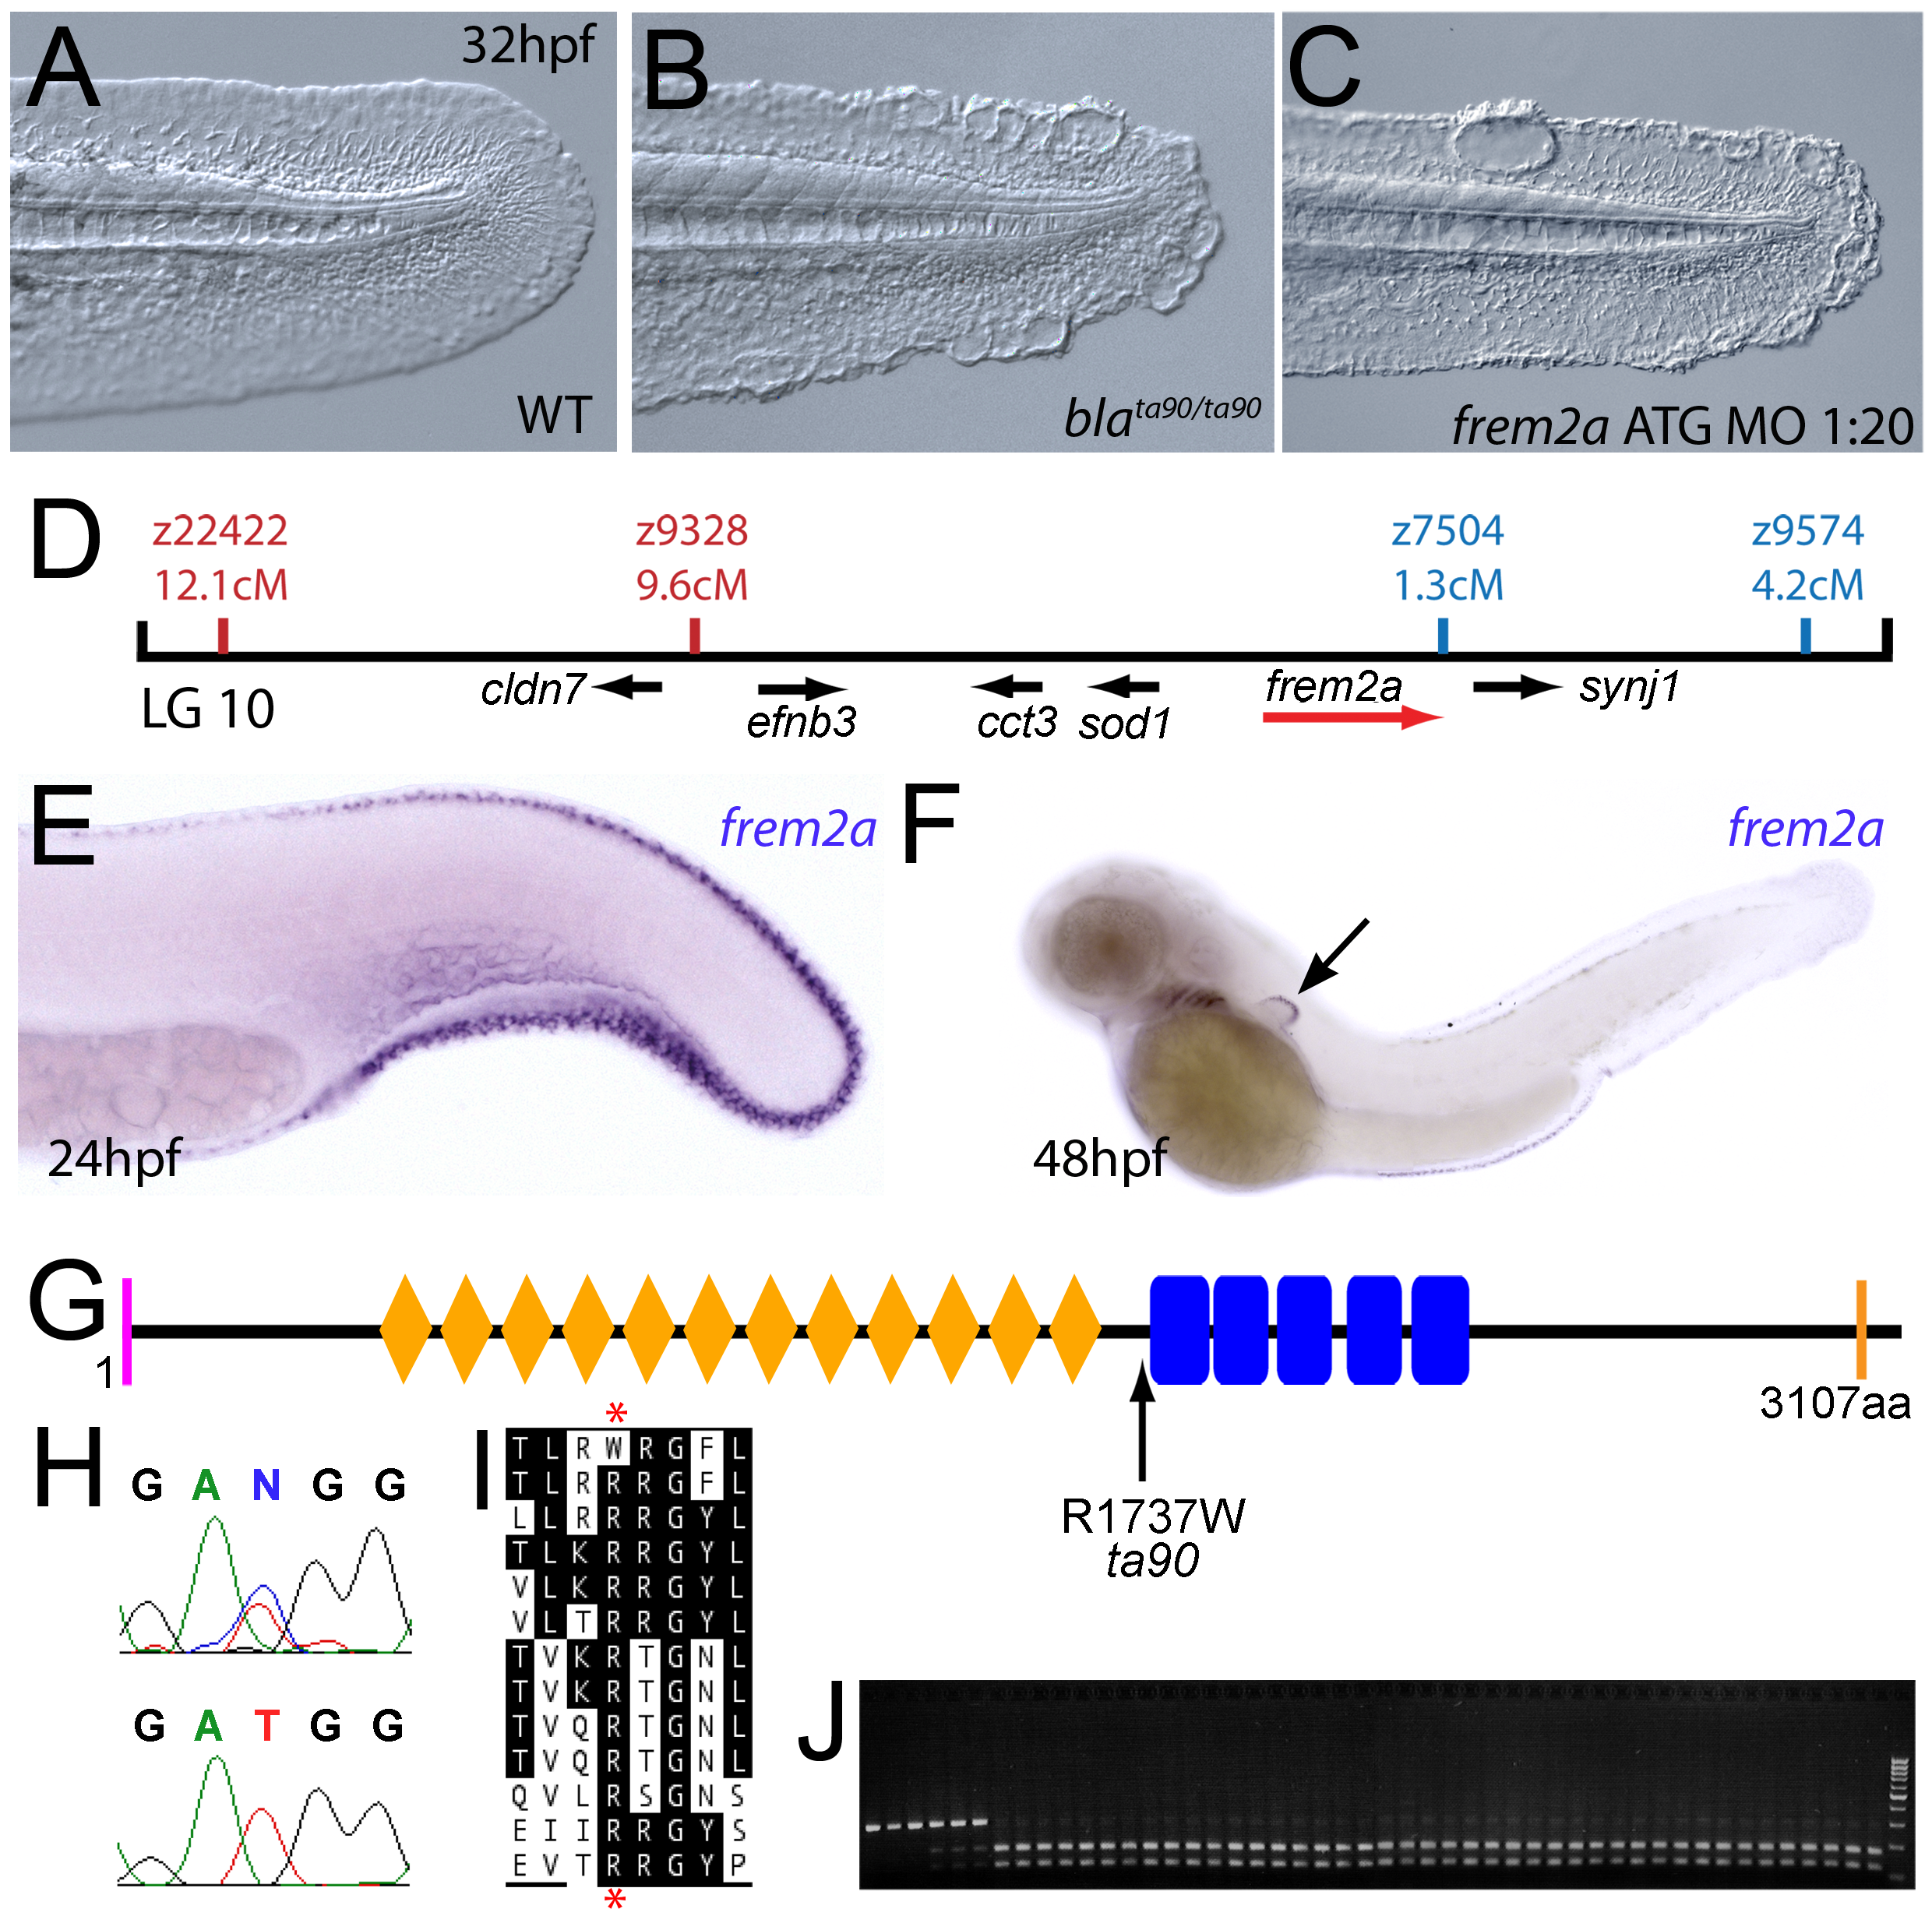 The fin blistering of the <i>blasen</i> mutant is caused by mutation of Frem2a.